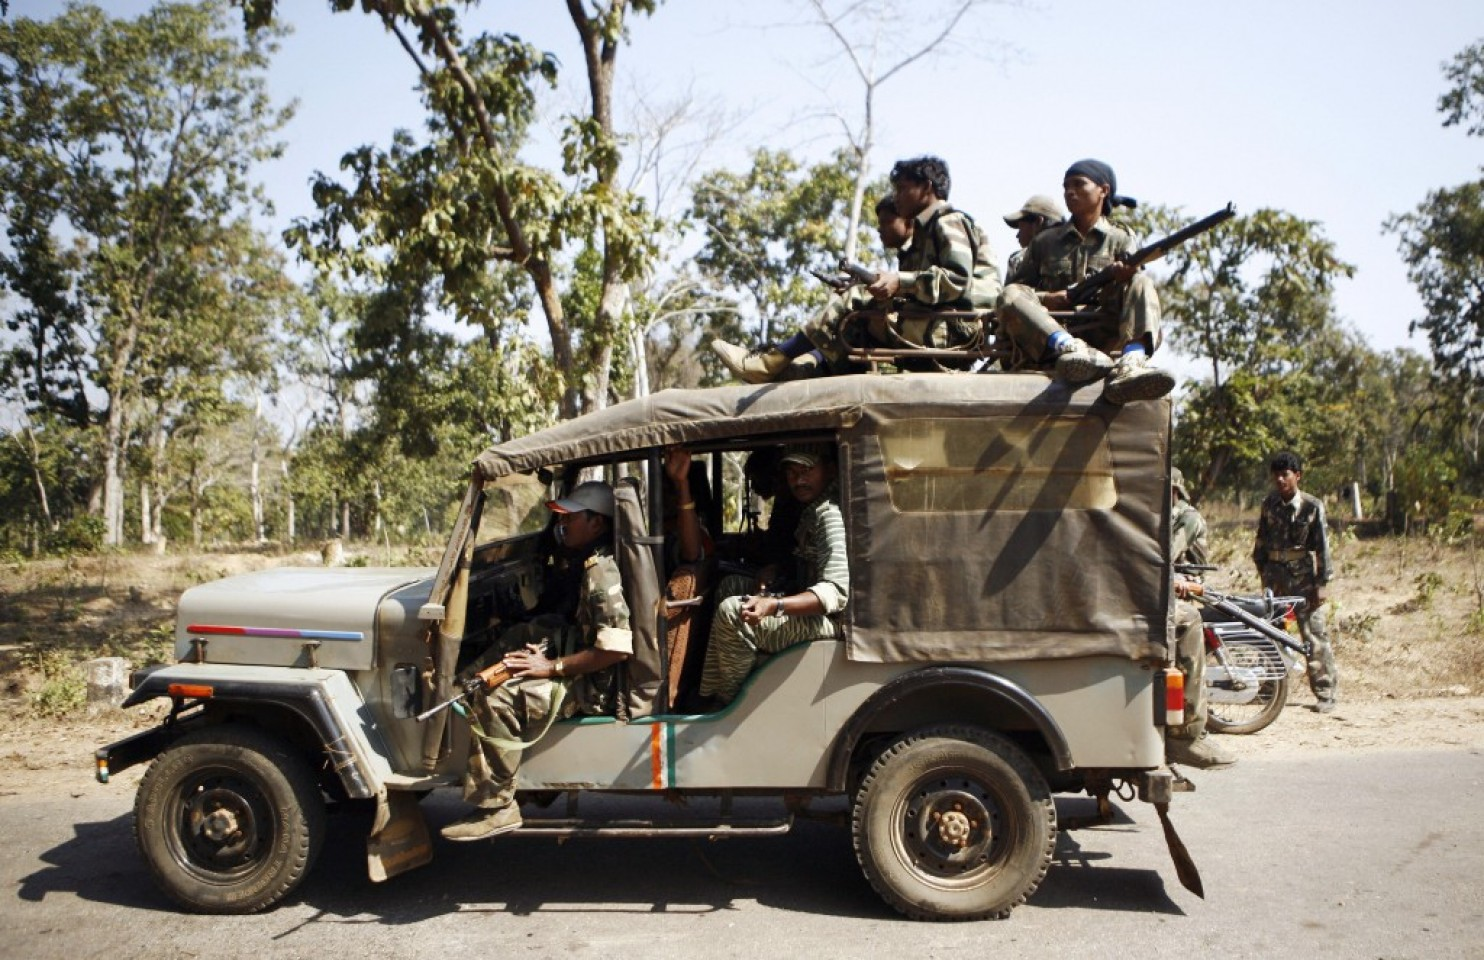 Special Police Officers, or SPOs, travel as part of a convoy of paramilitary forces in Chhattisgarh state in 2008. (Manpreet Romana/Agence France-Presse via Getty Images)